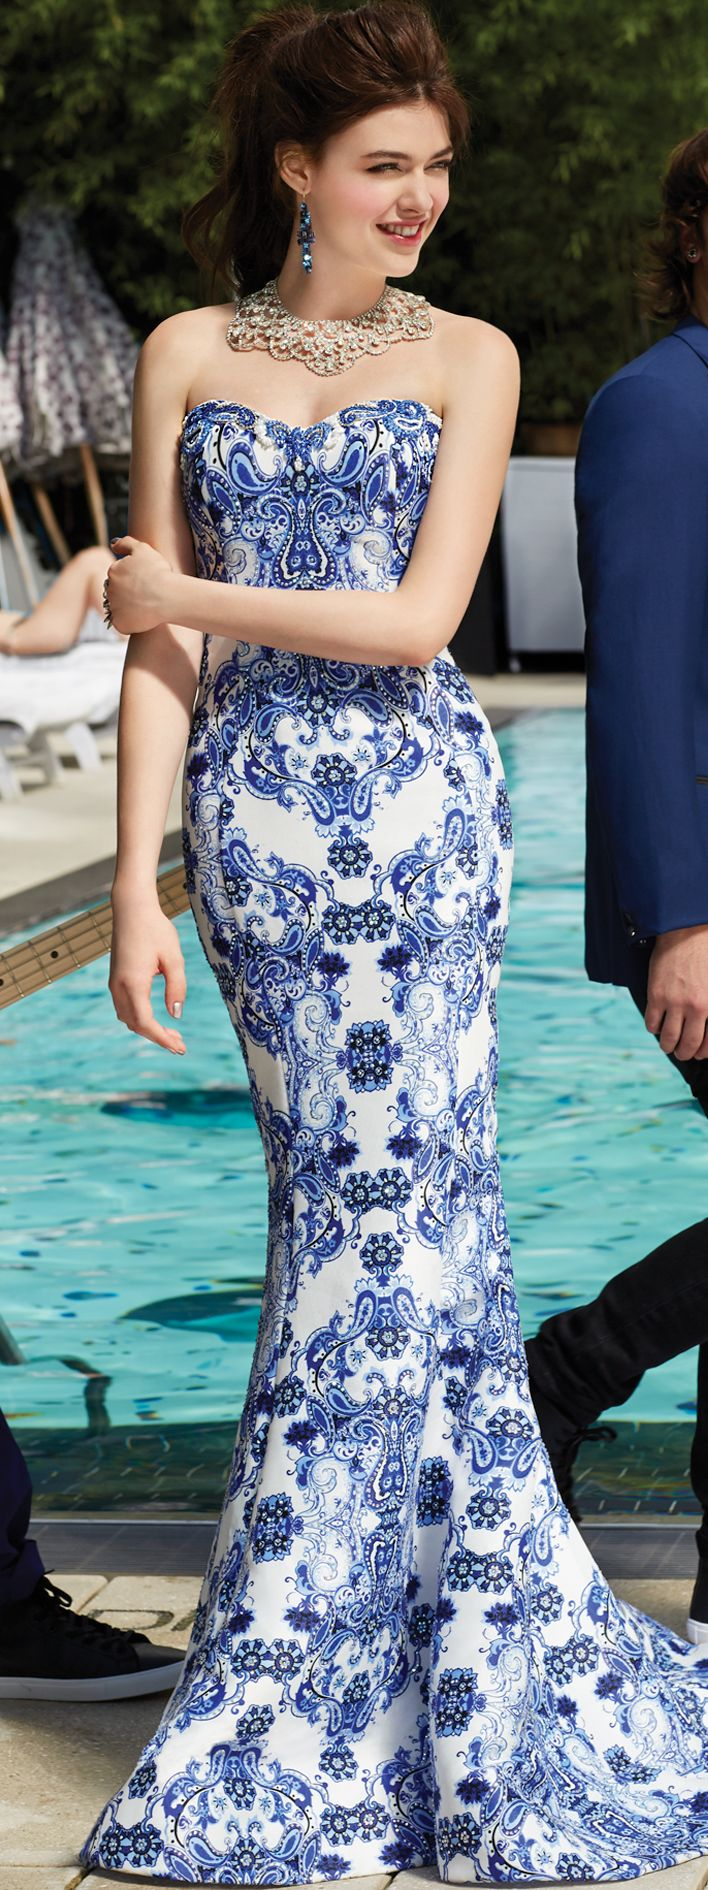 Prom 2017 is all about prints! Go bold in a blue and white paisley-printed prom dress from Camille La Vie.